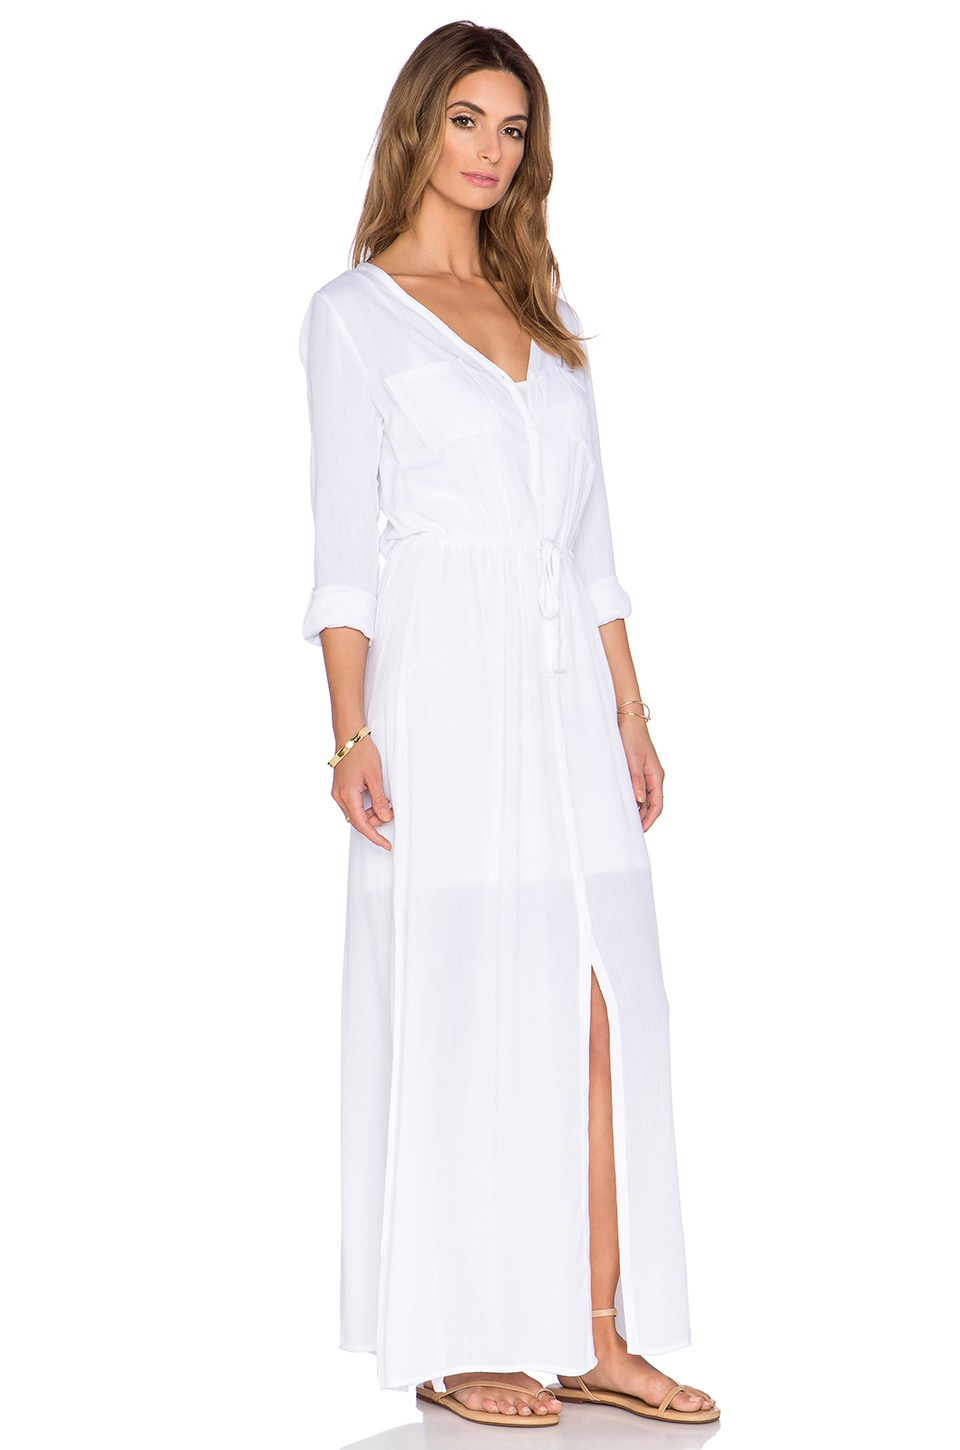 Splendid Button Down Maxi Dress in White | REVOLVE